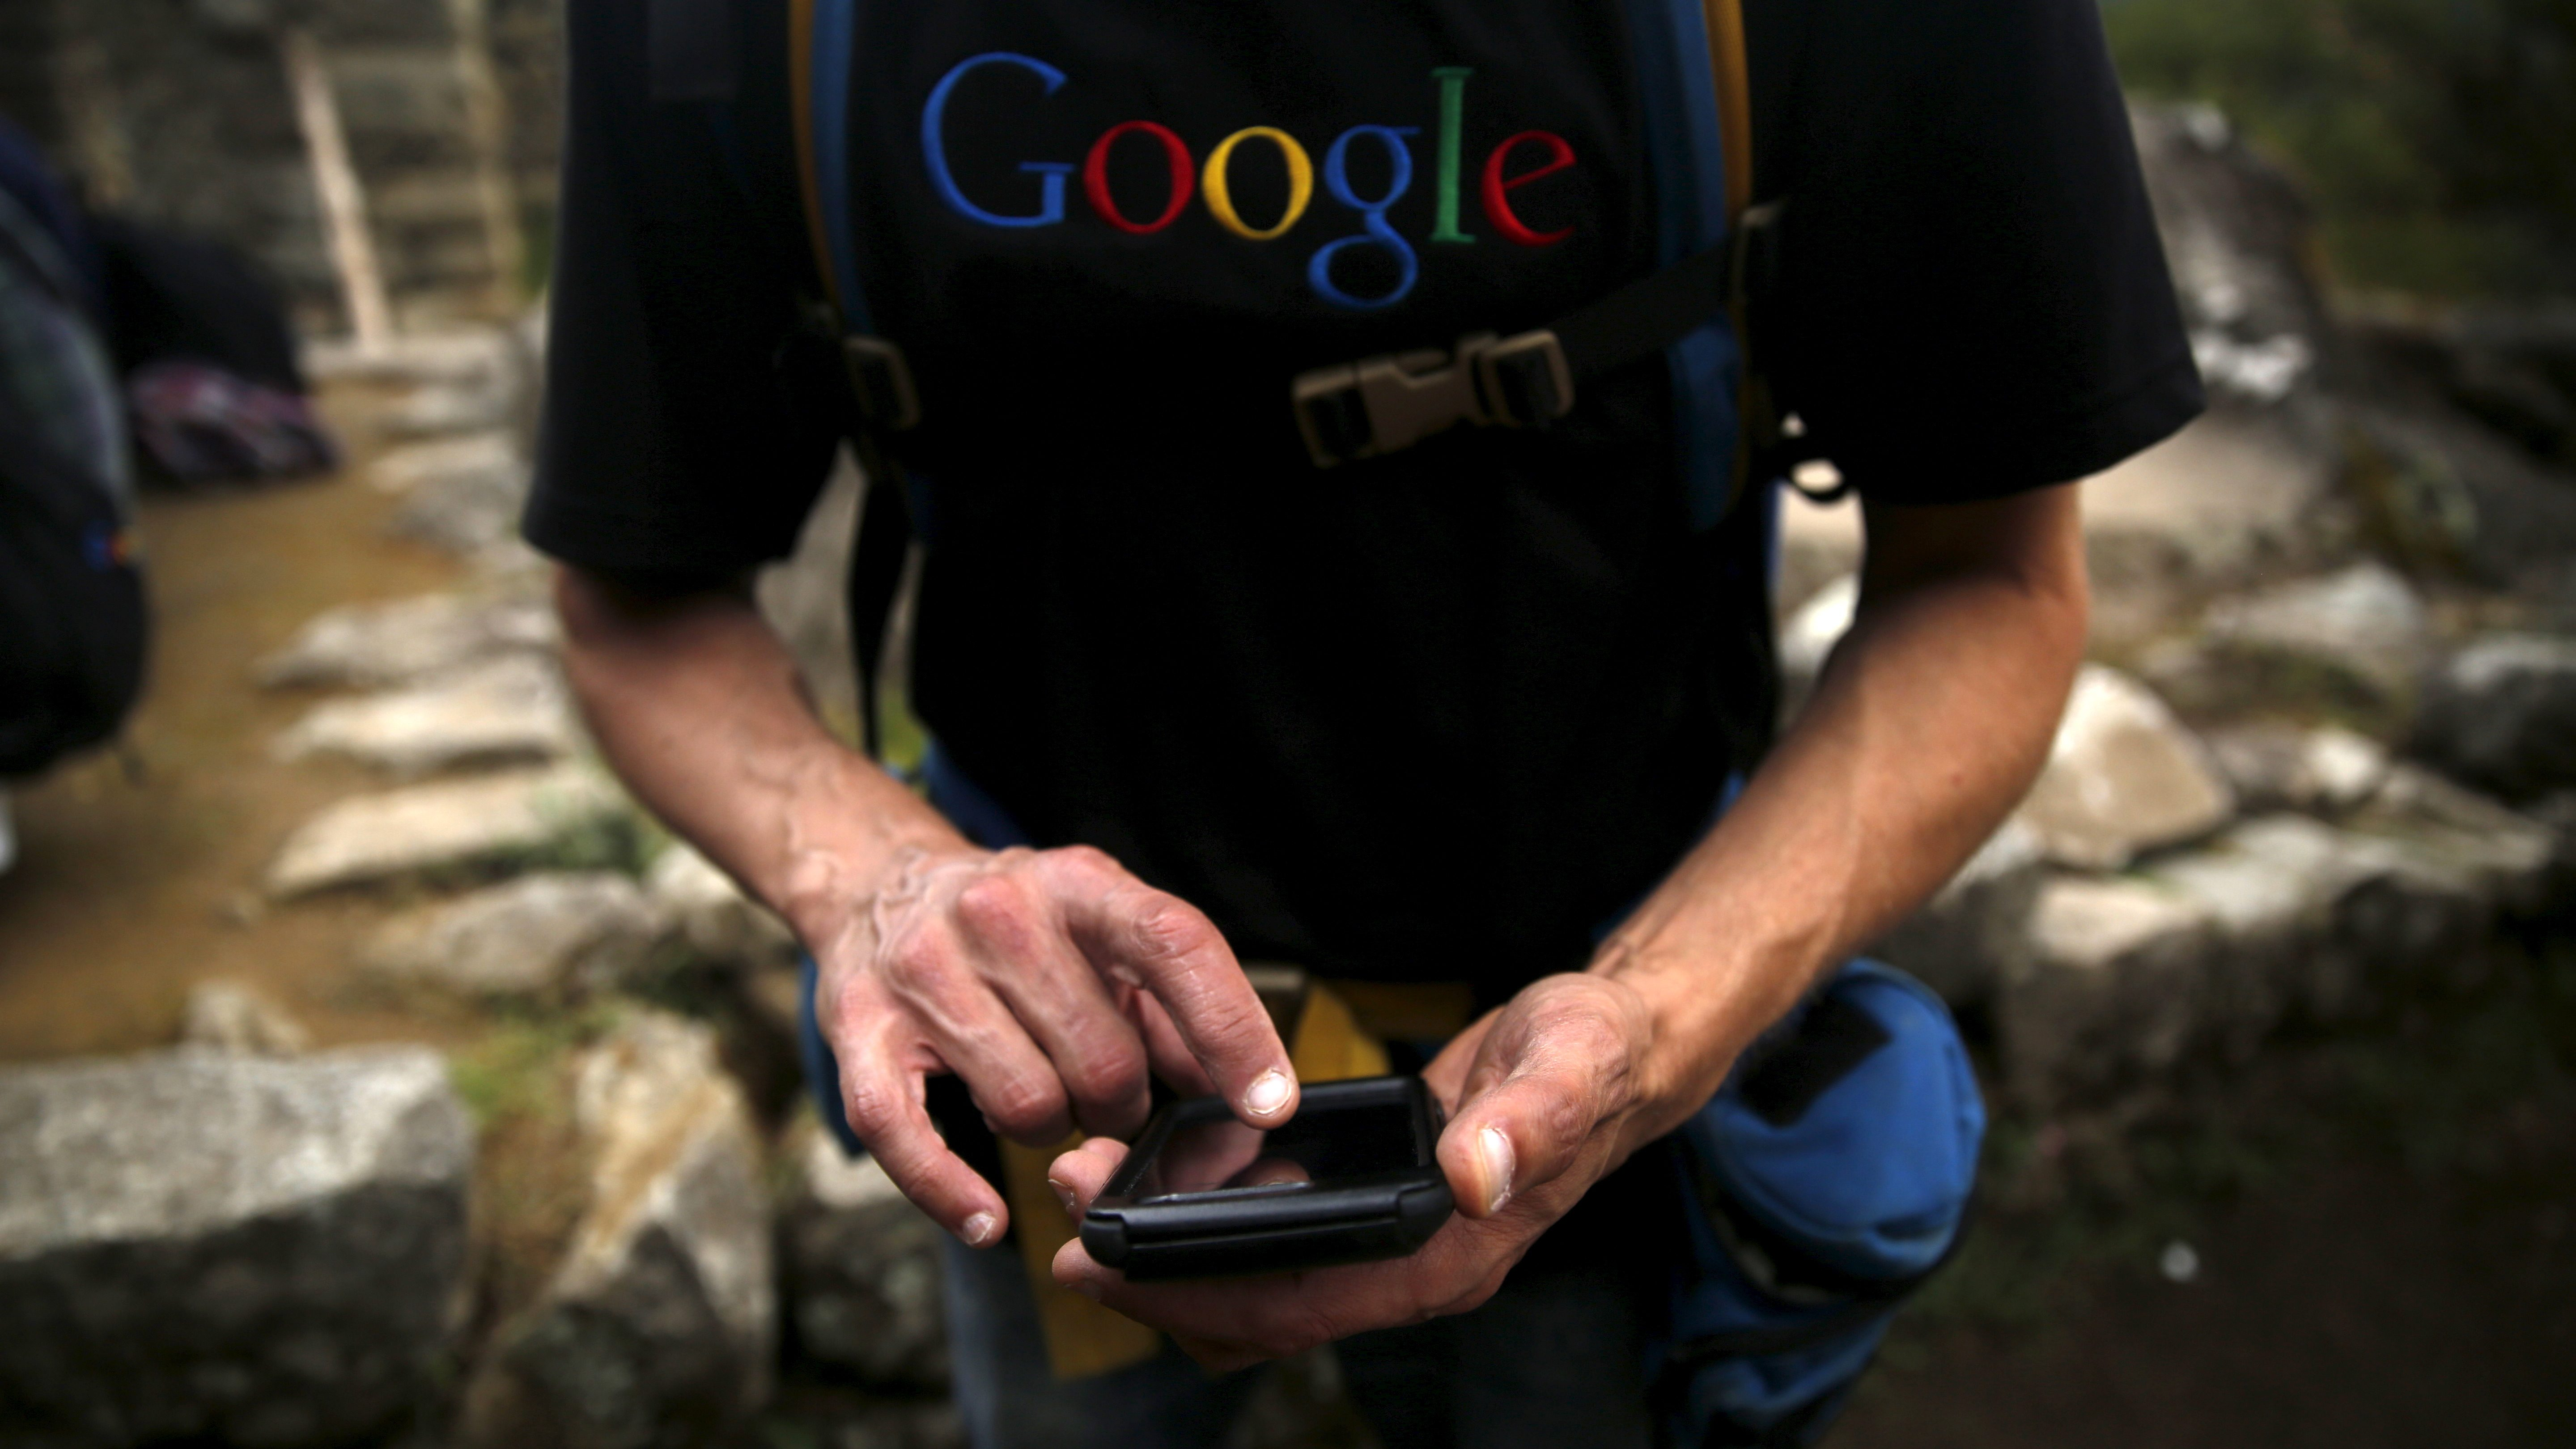 A man in a Google T shirt uses a phone.